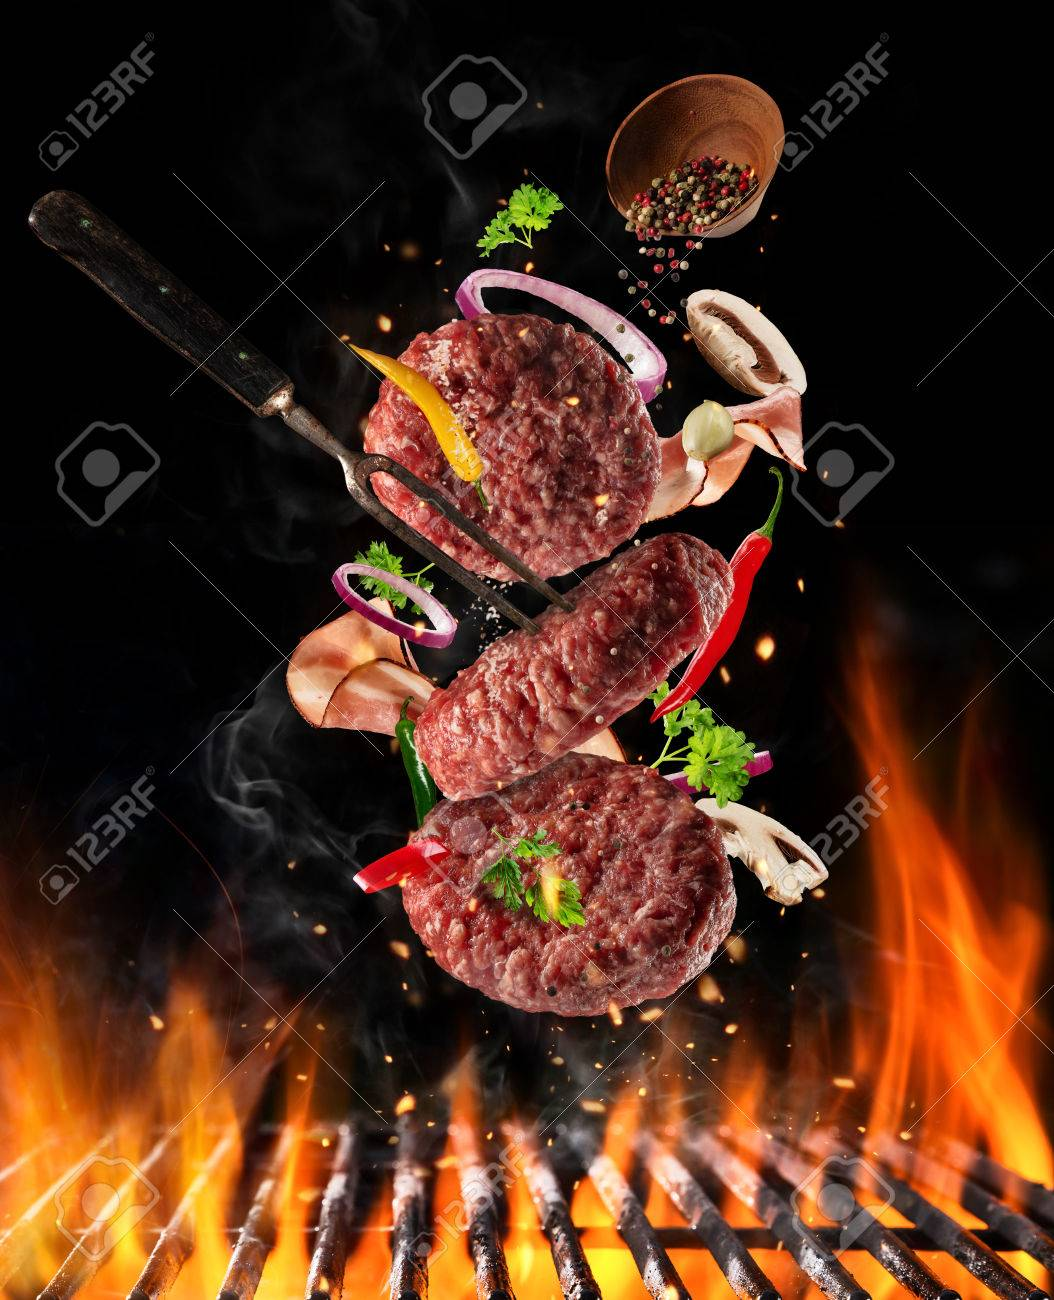 Flying raw milled beef meat, with ingredients for cooking above grill fire. Freeze motion of cooking staff. Fork holding the meat. Concept of food preparation in low gravity mode. - 76366193